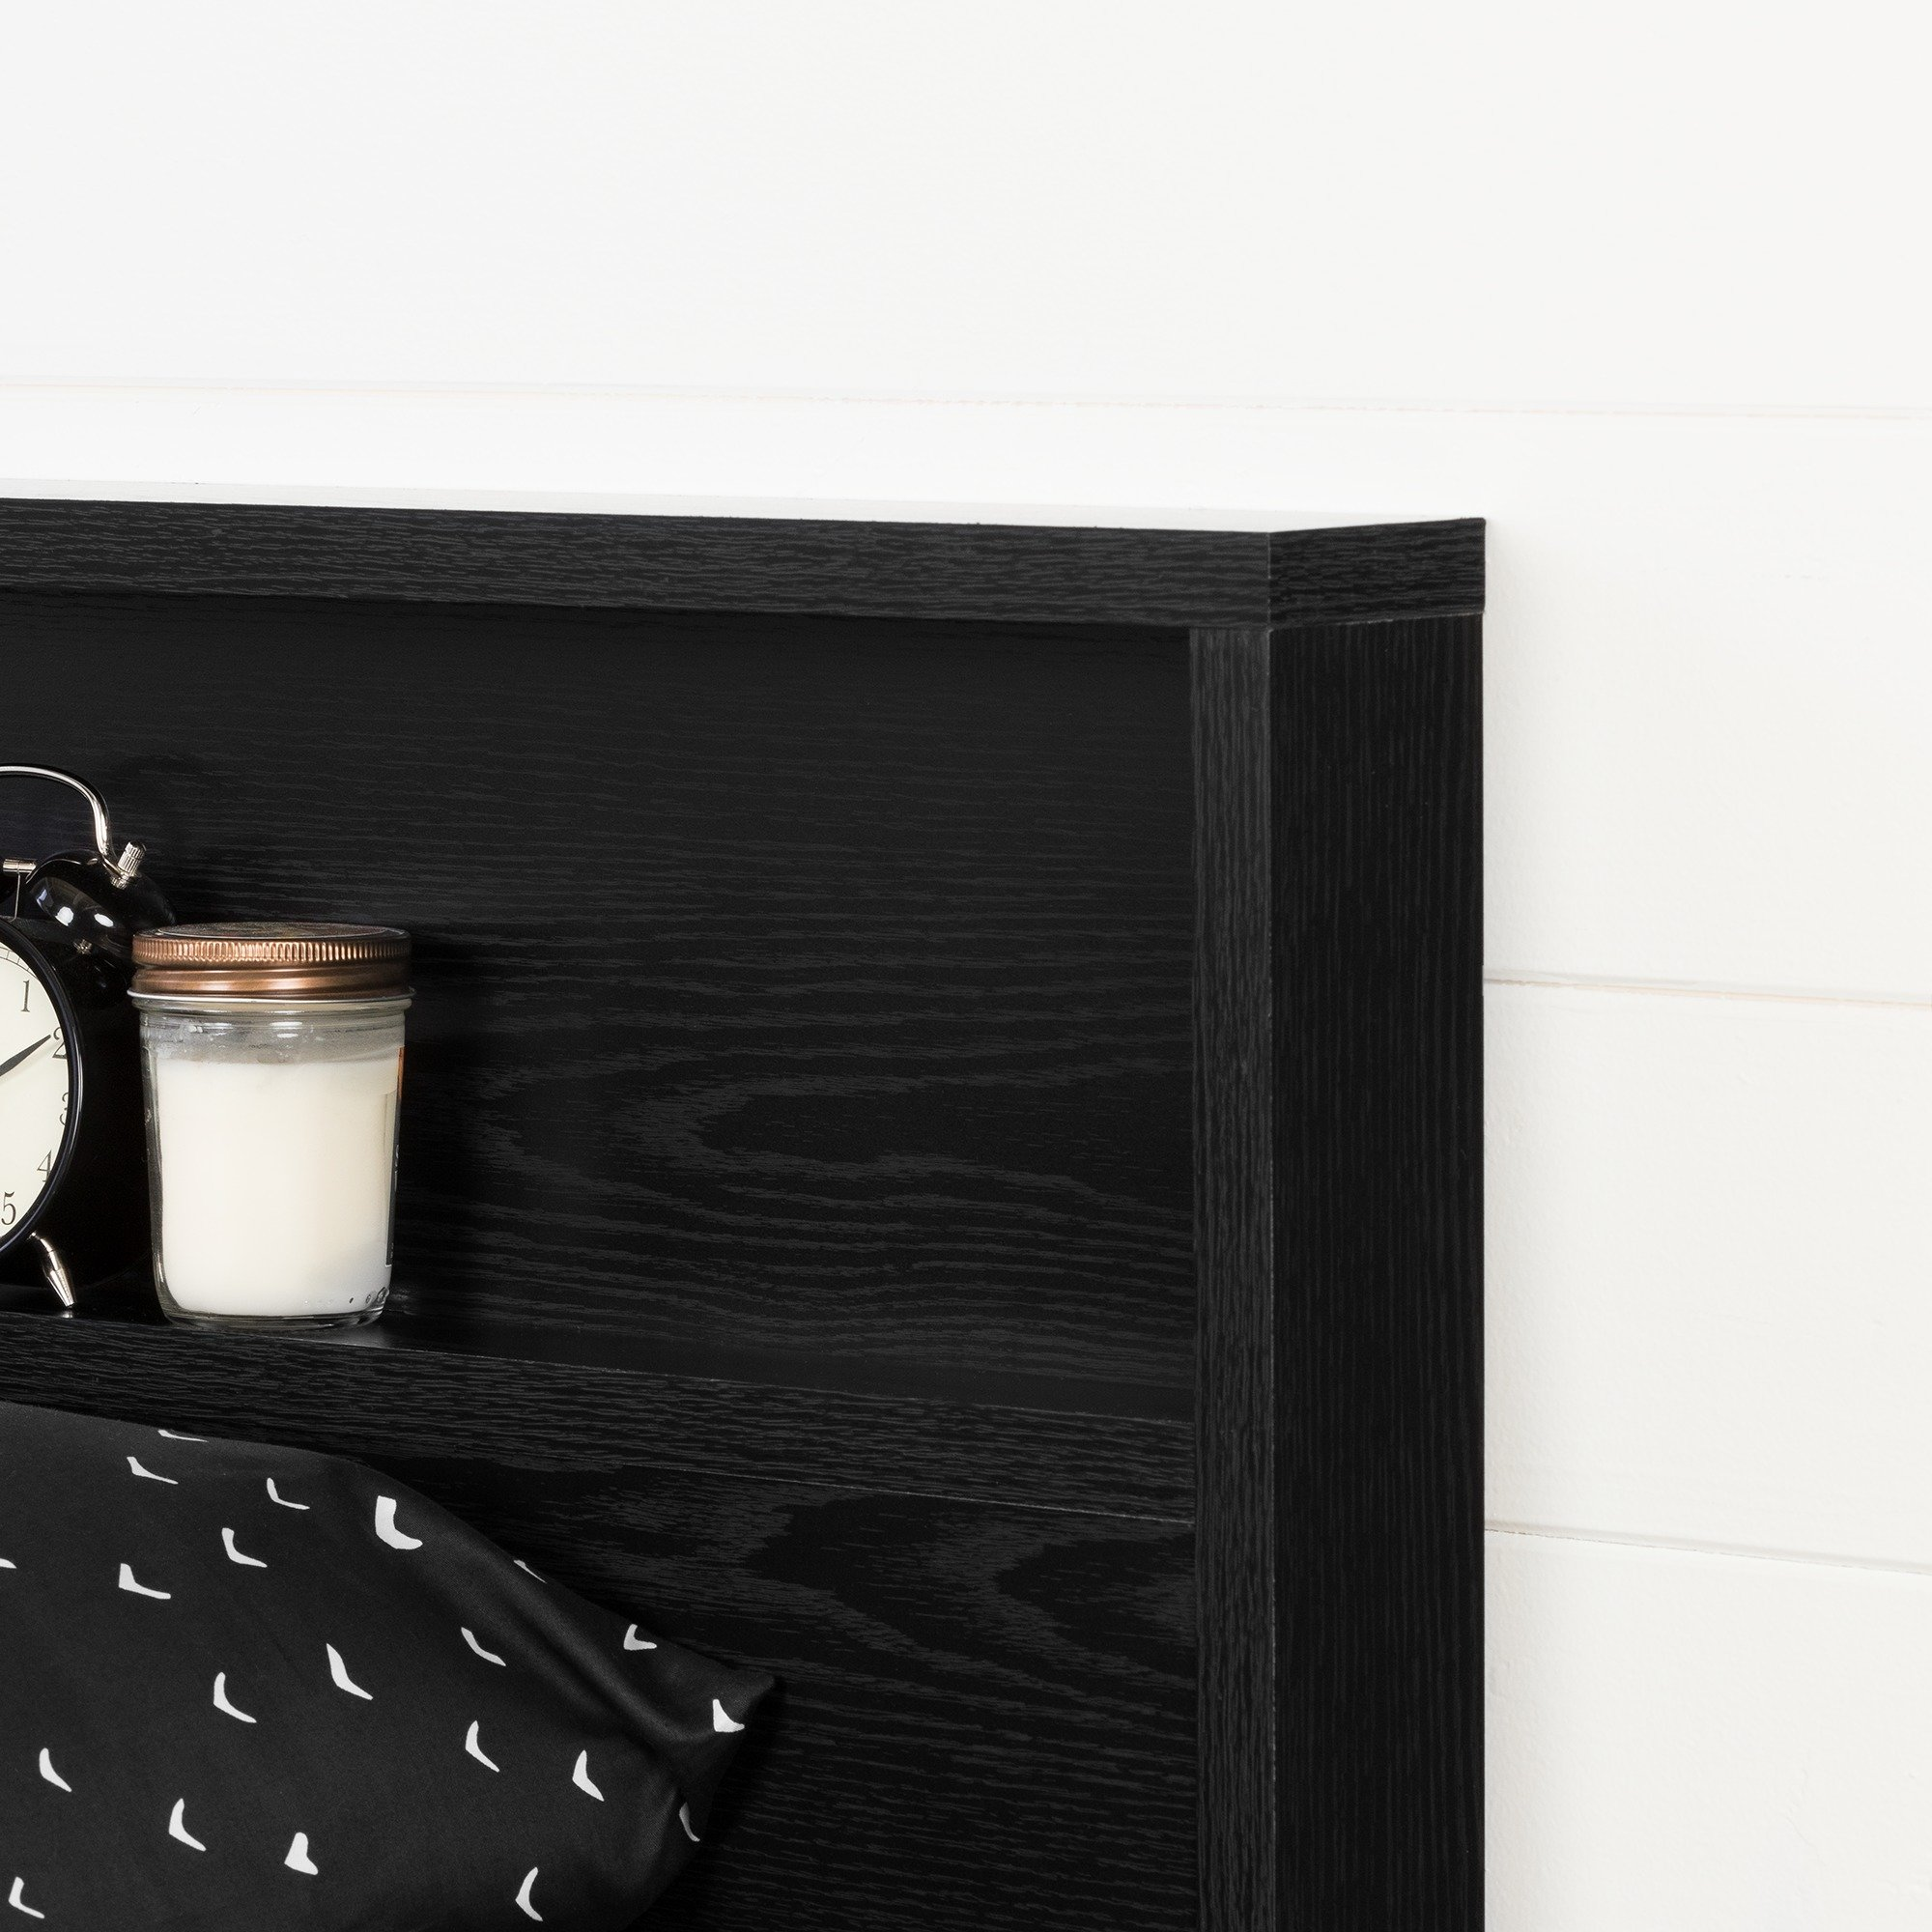 South Shore 11290 Holland Headboard (54/60''), Full/Queen, Black Oak by South Shore (Image #4)